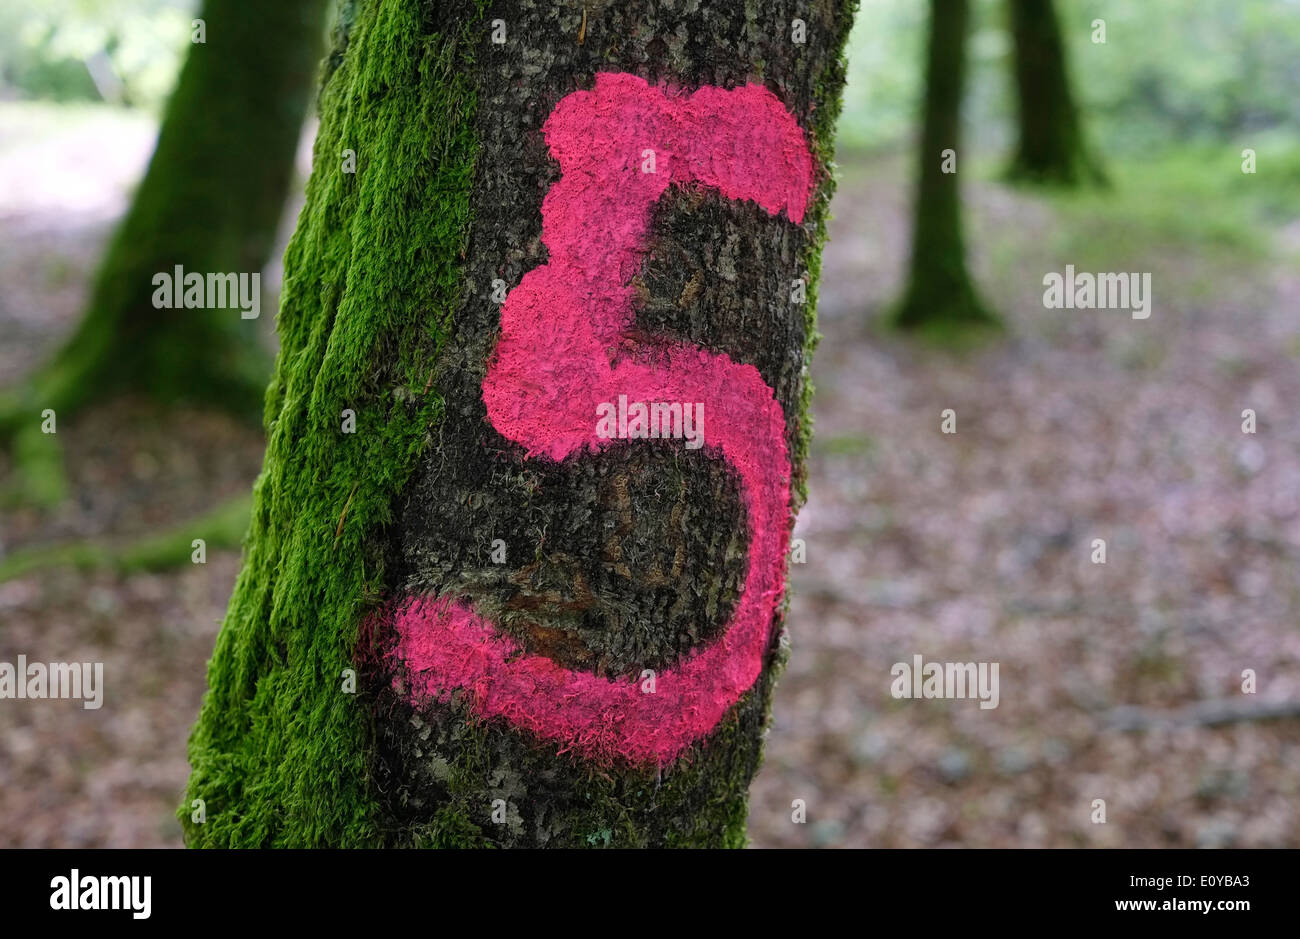 pink number 5 painted on green tree trunk - Stock Image